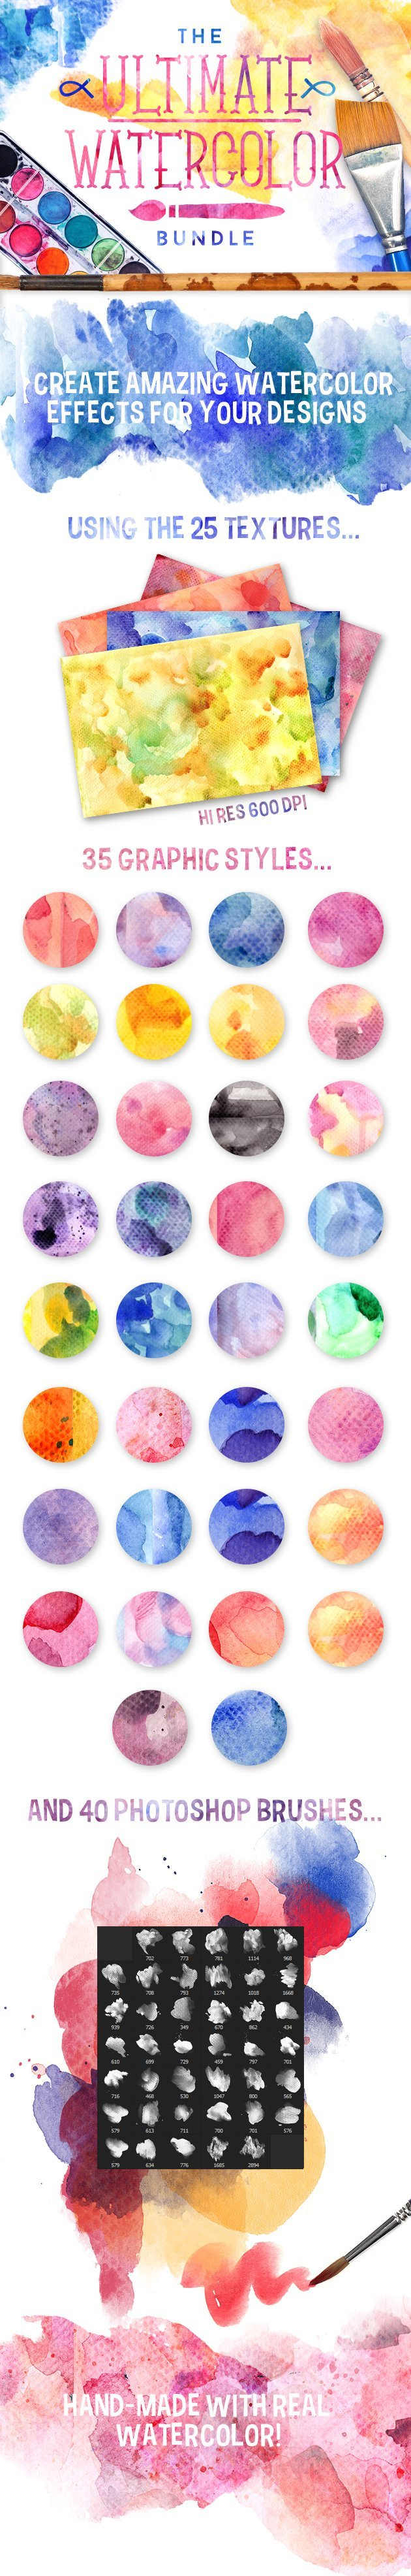 the-ultimate-watercolor-bundle-inkydeals-preview-large